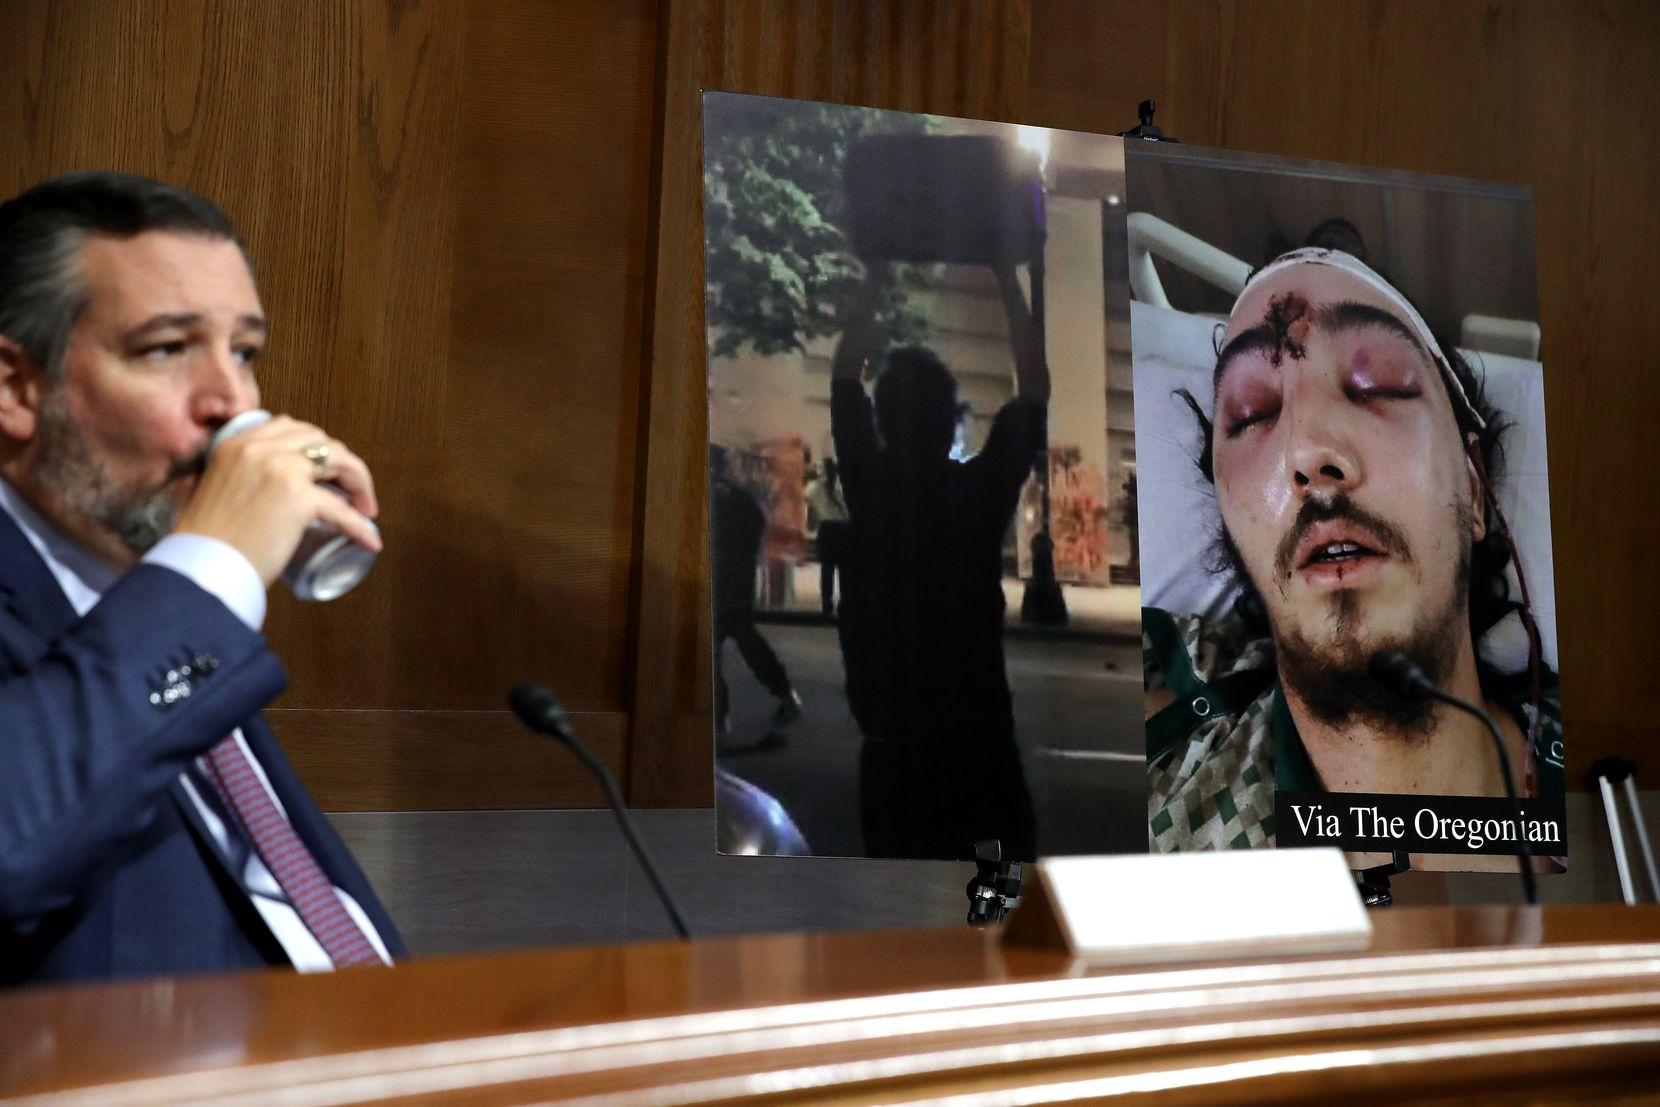 """Images of Donavan La Bella, who was shot in the head with a rubber bullet while protesting outside the federal court building in Portland, are displayed during a Senate Judiciary subcommittee hearing about """"anarchist violence"""" on Aug. 4, 2020, chaired by Sen. Ted Cruz, left."""